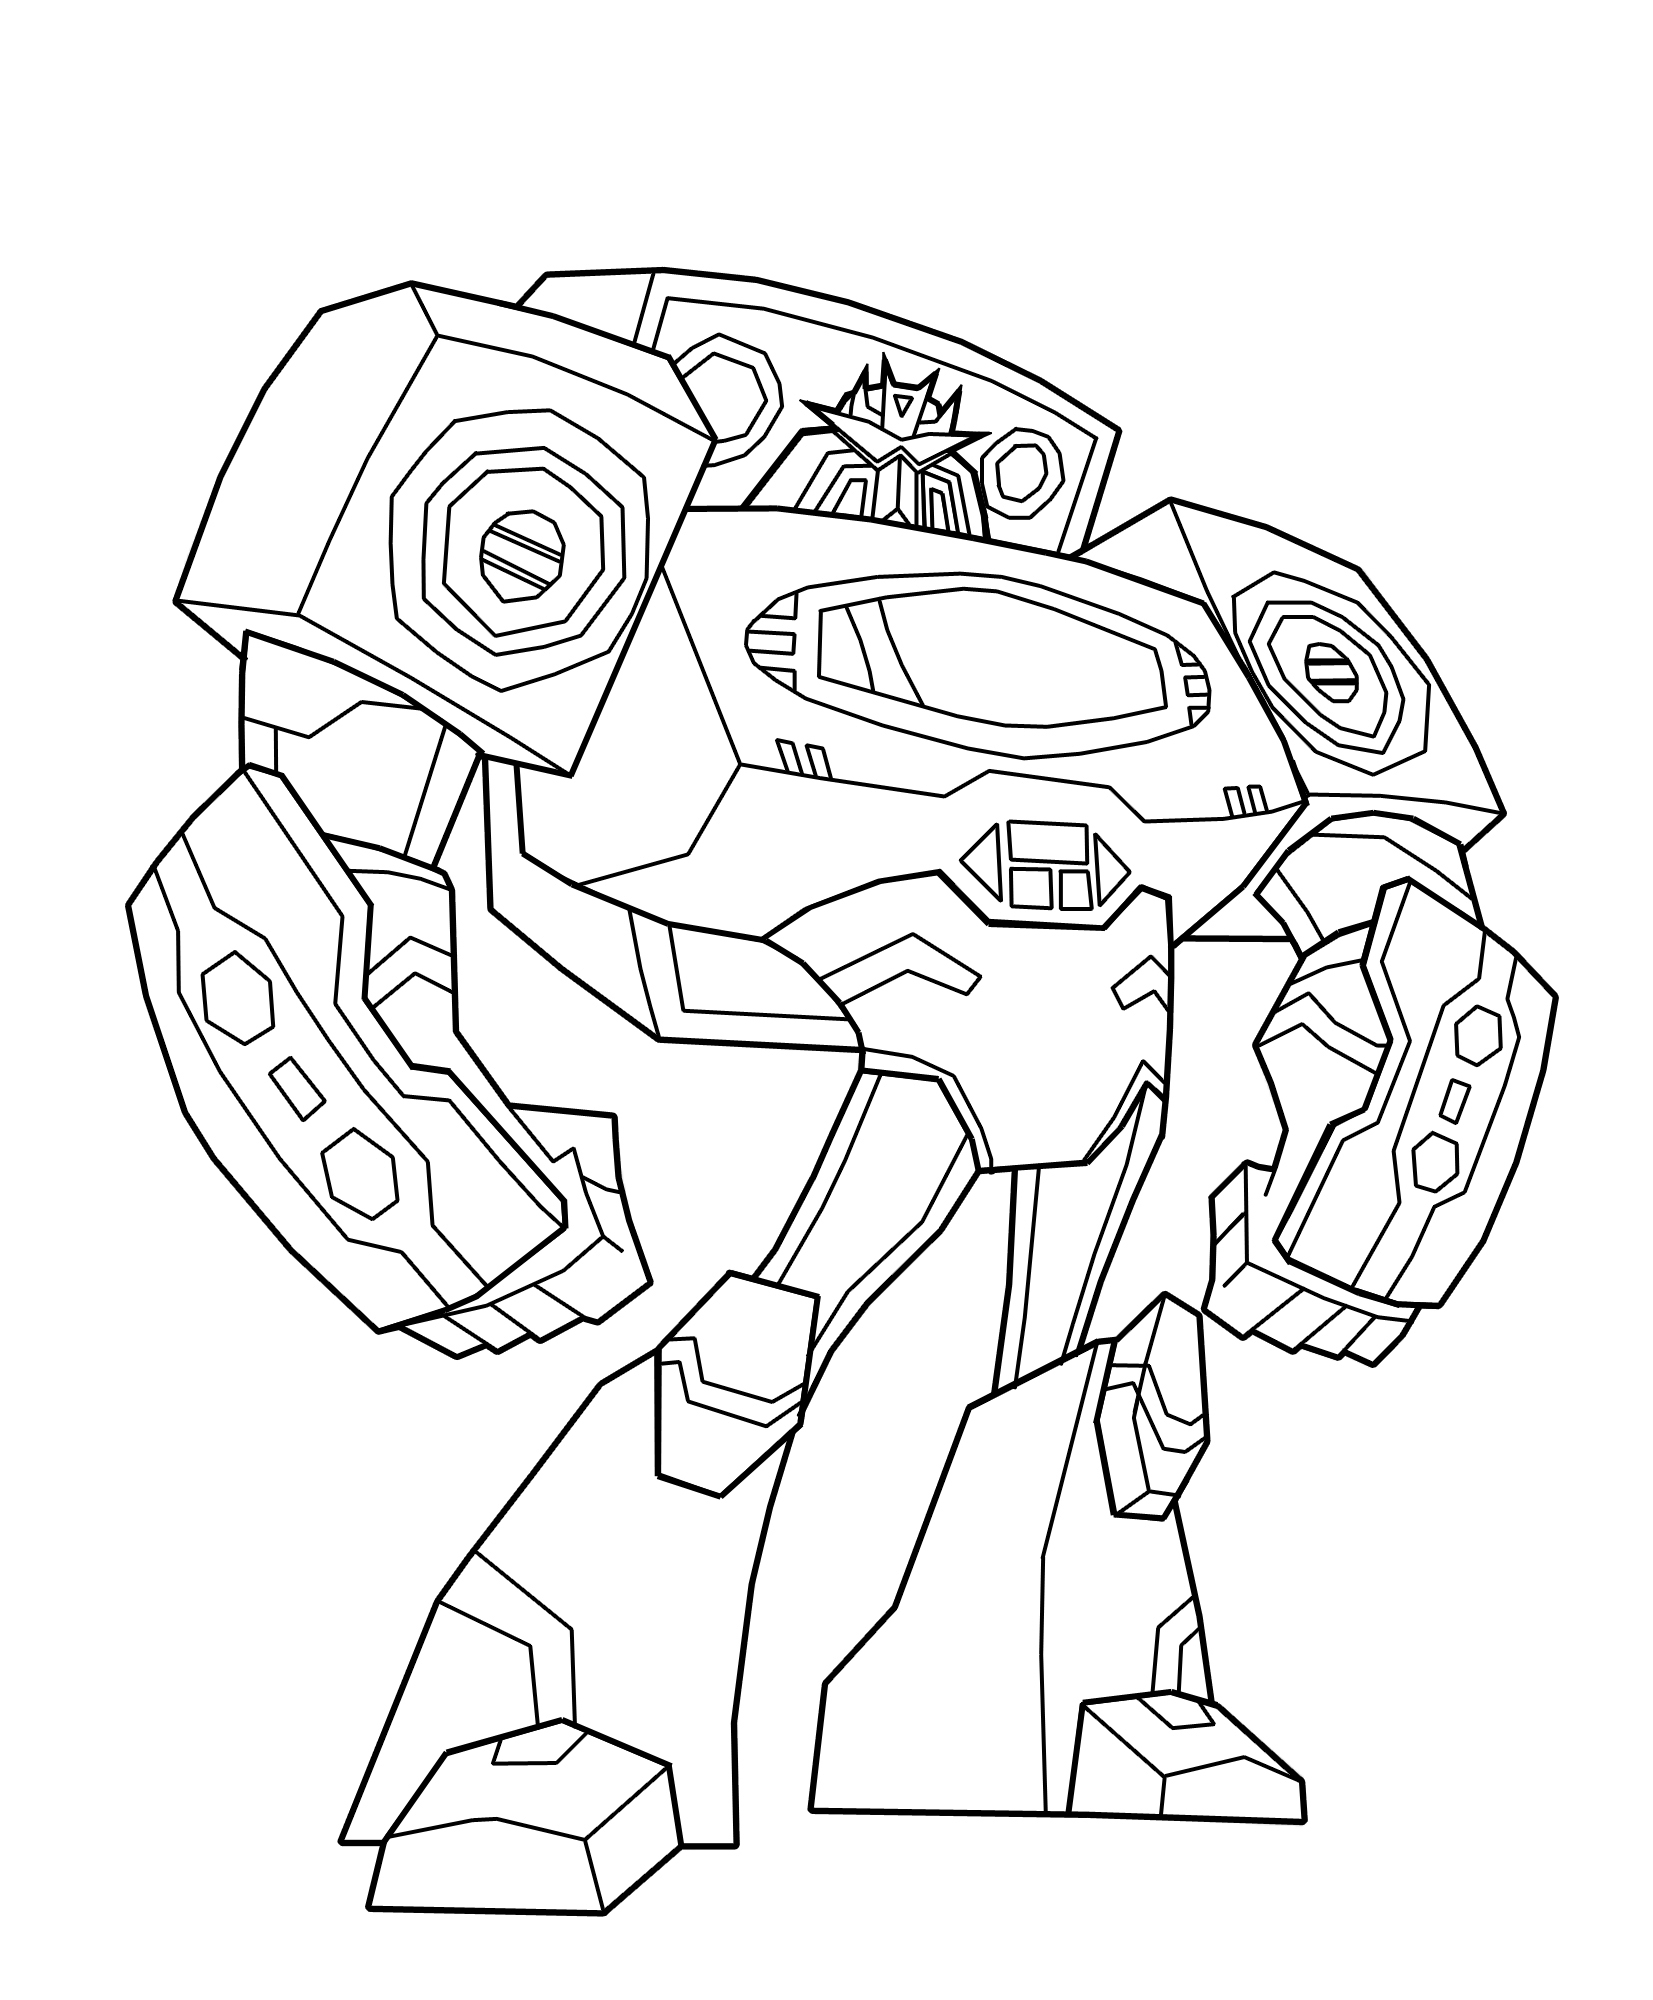 Transformers Coloring Pages | 360ColoringPages